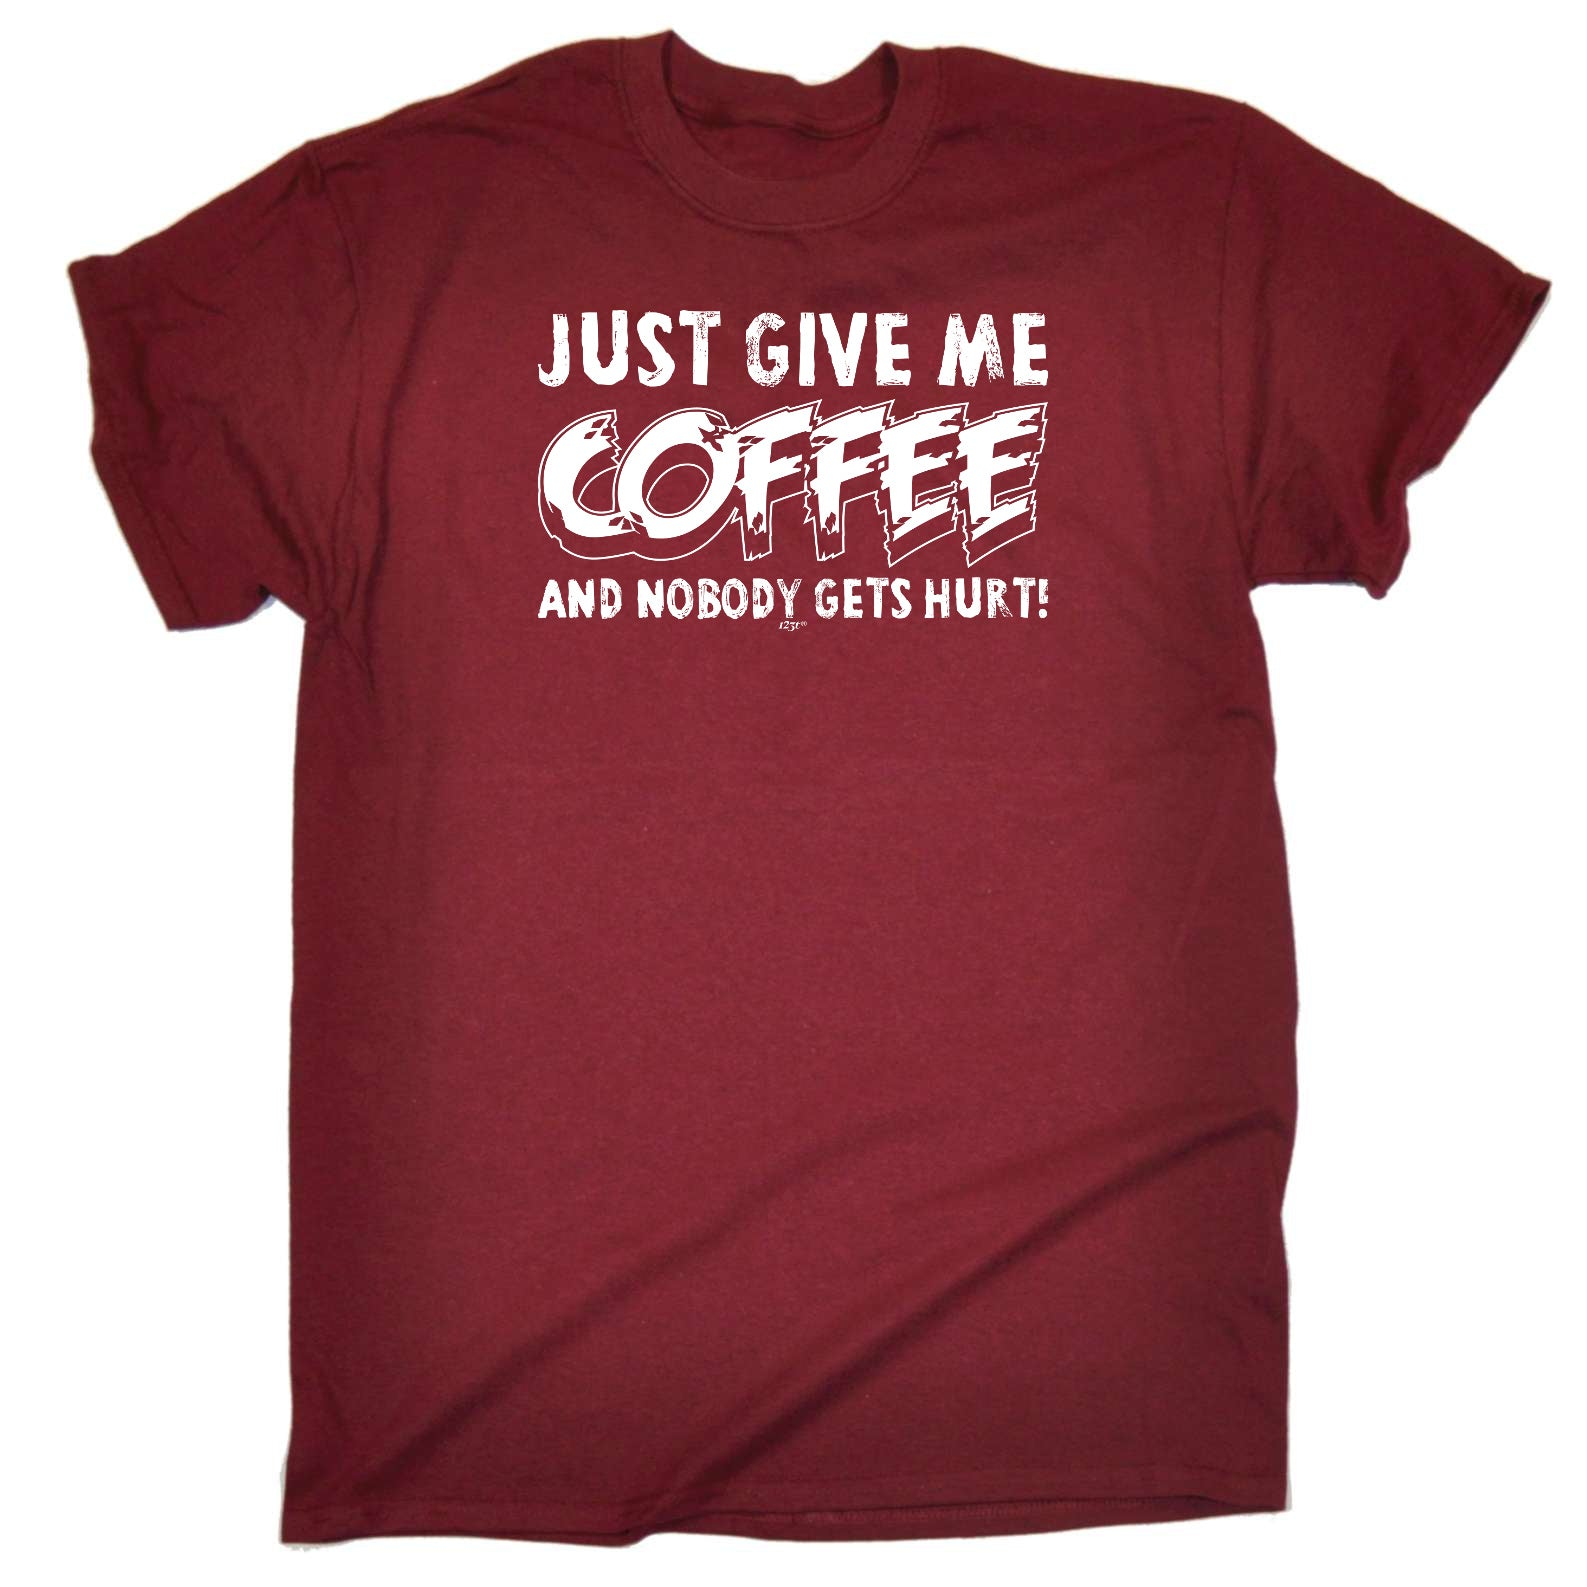 123t Funny Tee - Just Give Me The Coffee And Nobody Gets Hurt - Mens T-Shirt